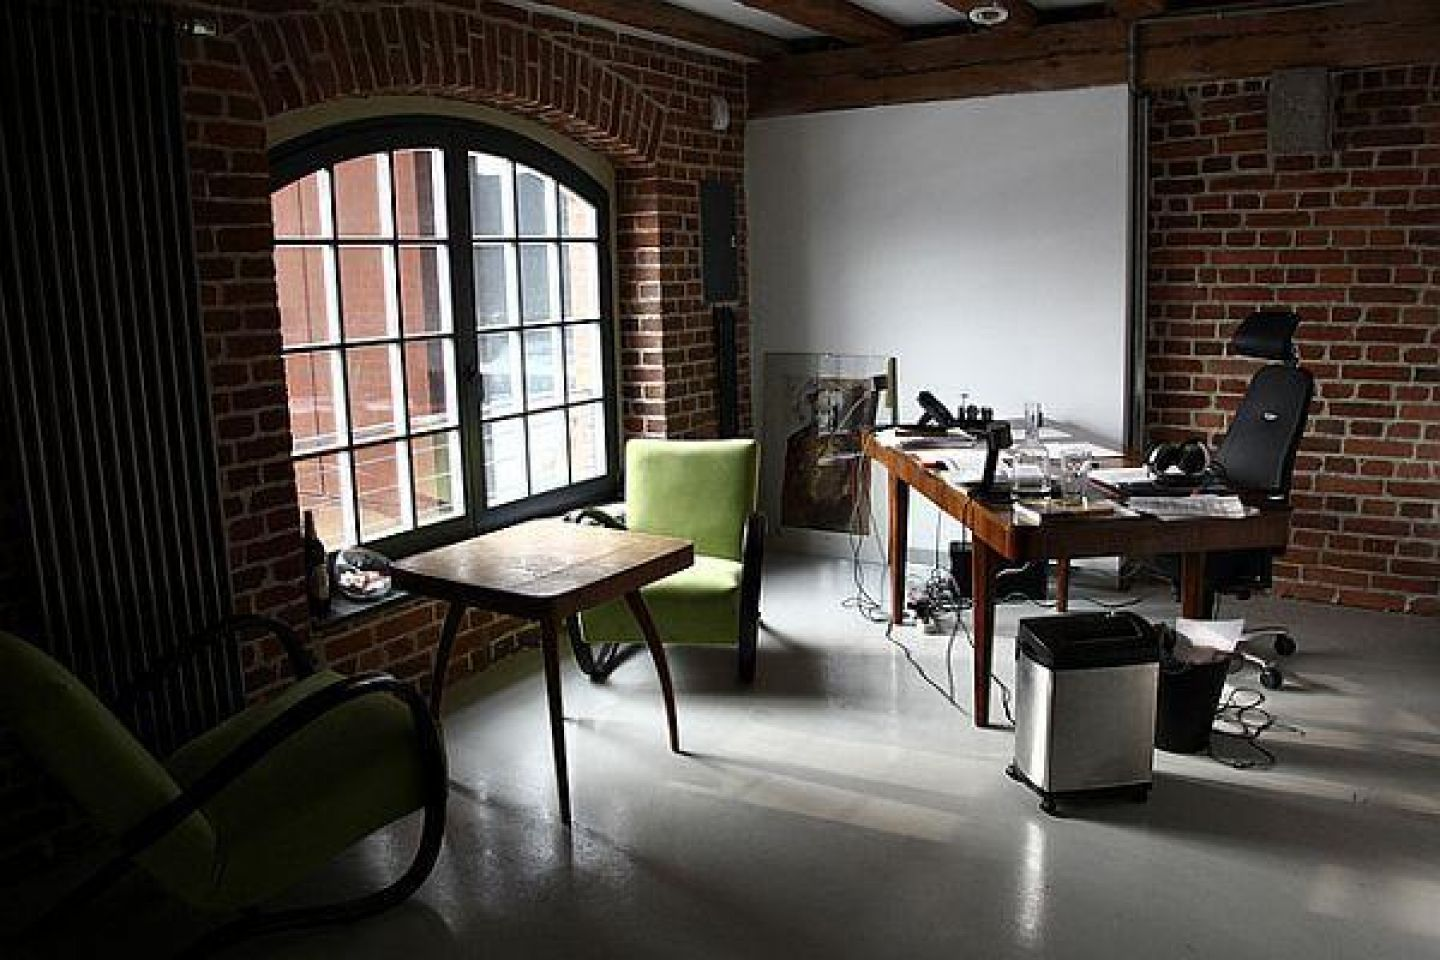 Home office interior design ideas i love the brick walls for Office window ideas